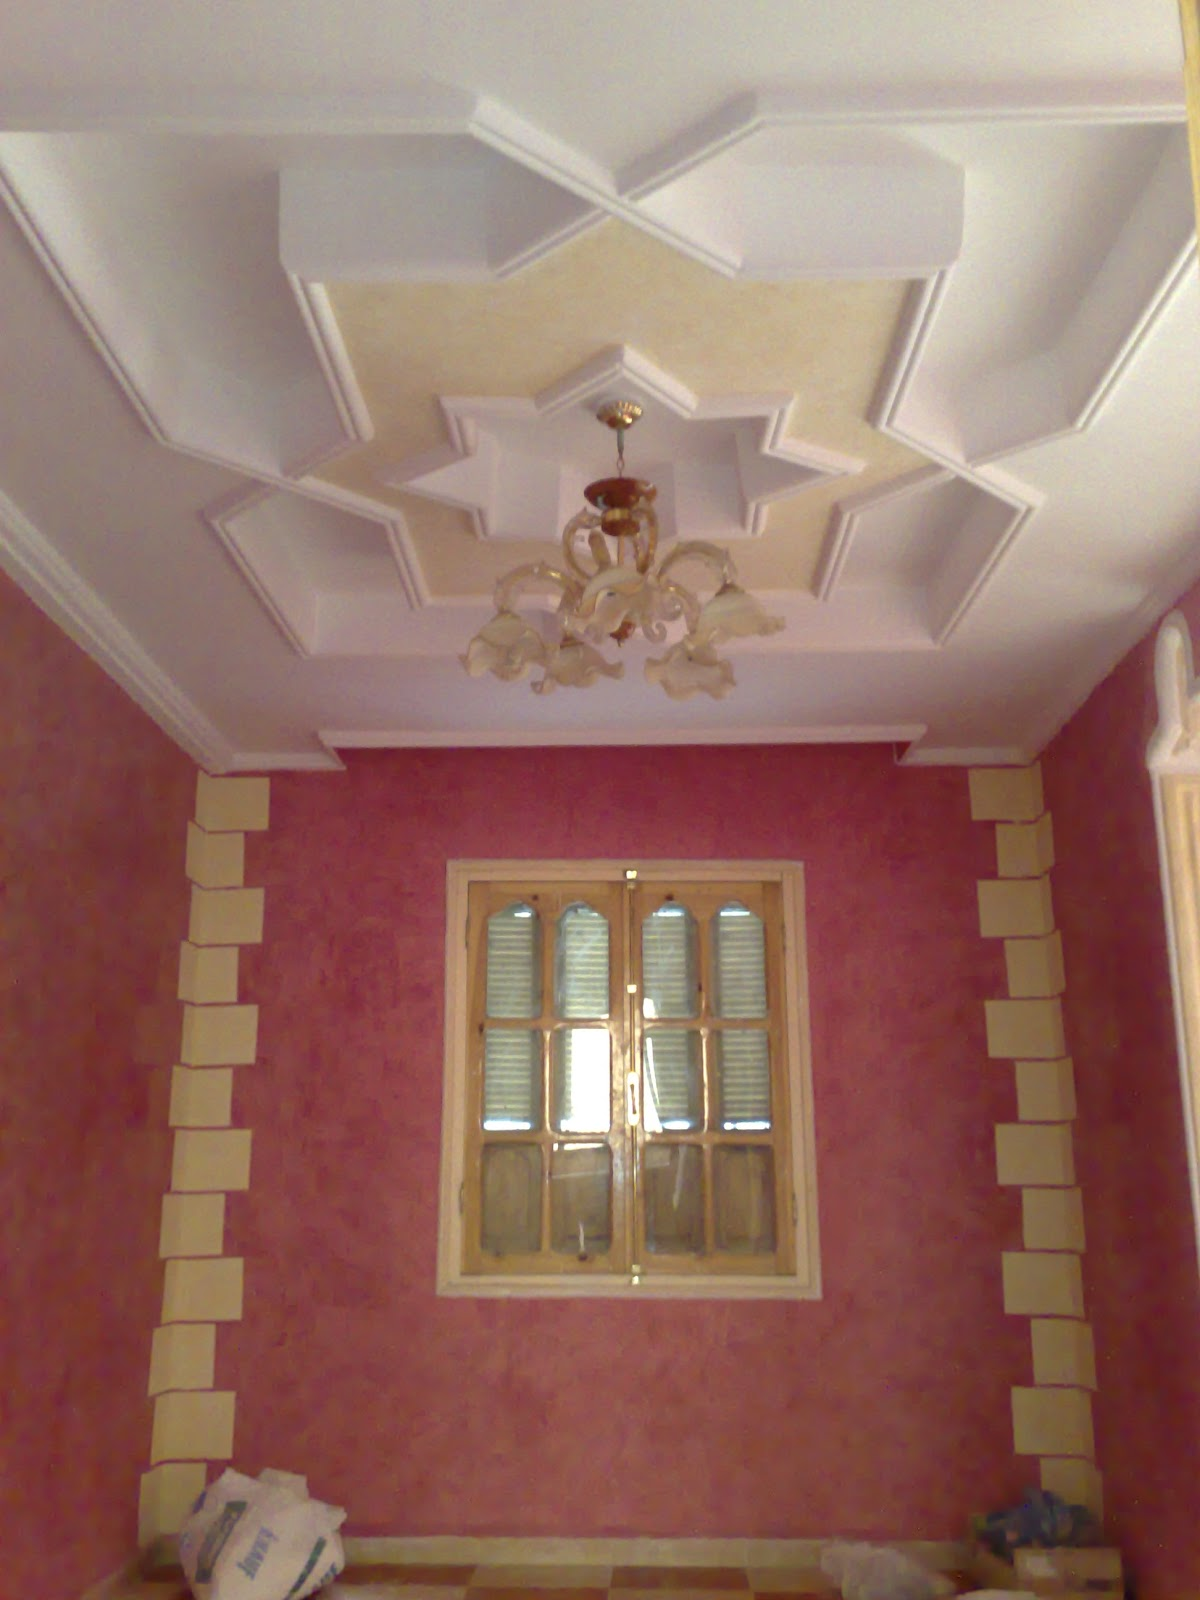 Decoration plafond platre platre for Decoration plafond en platre